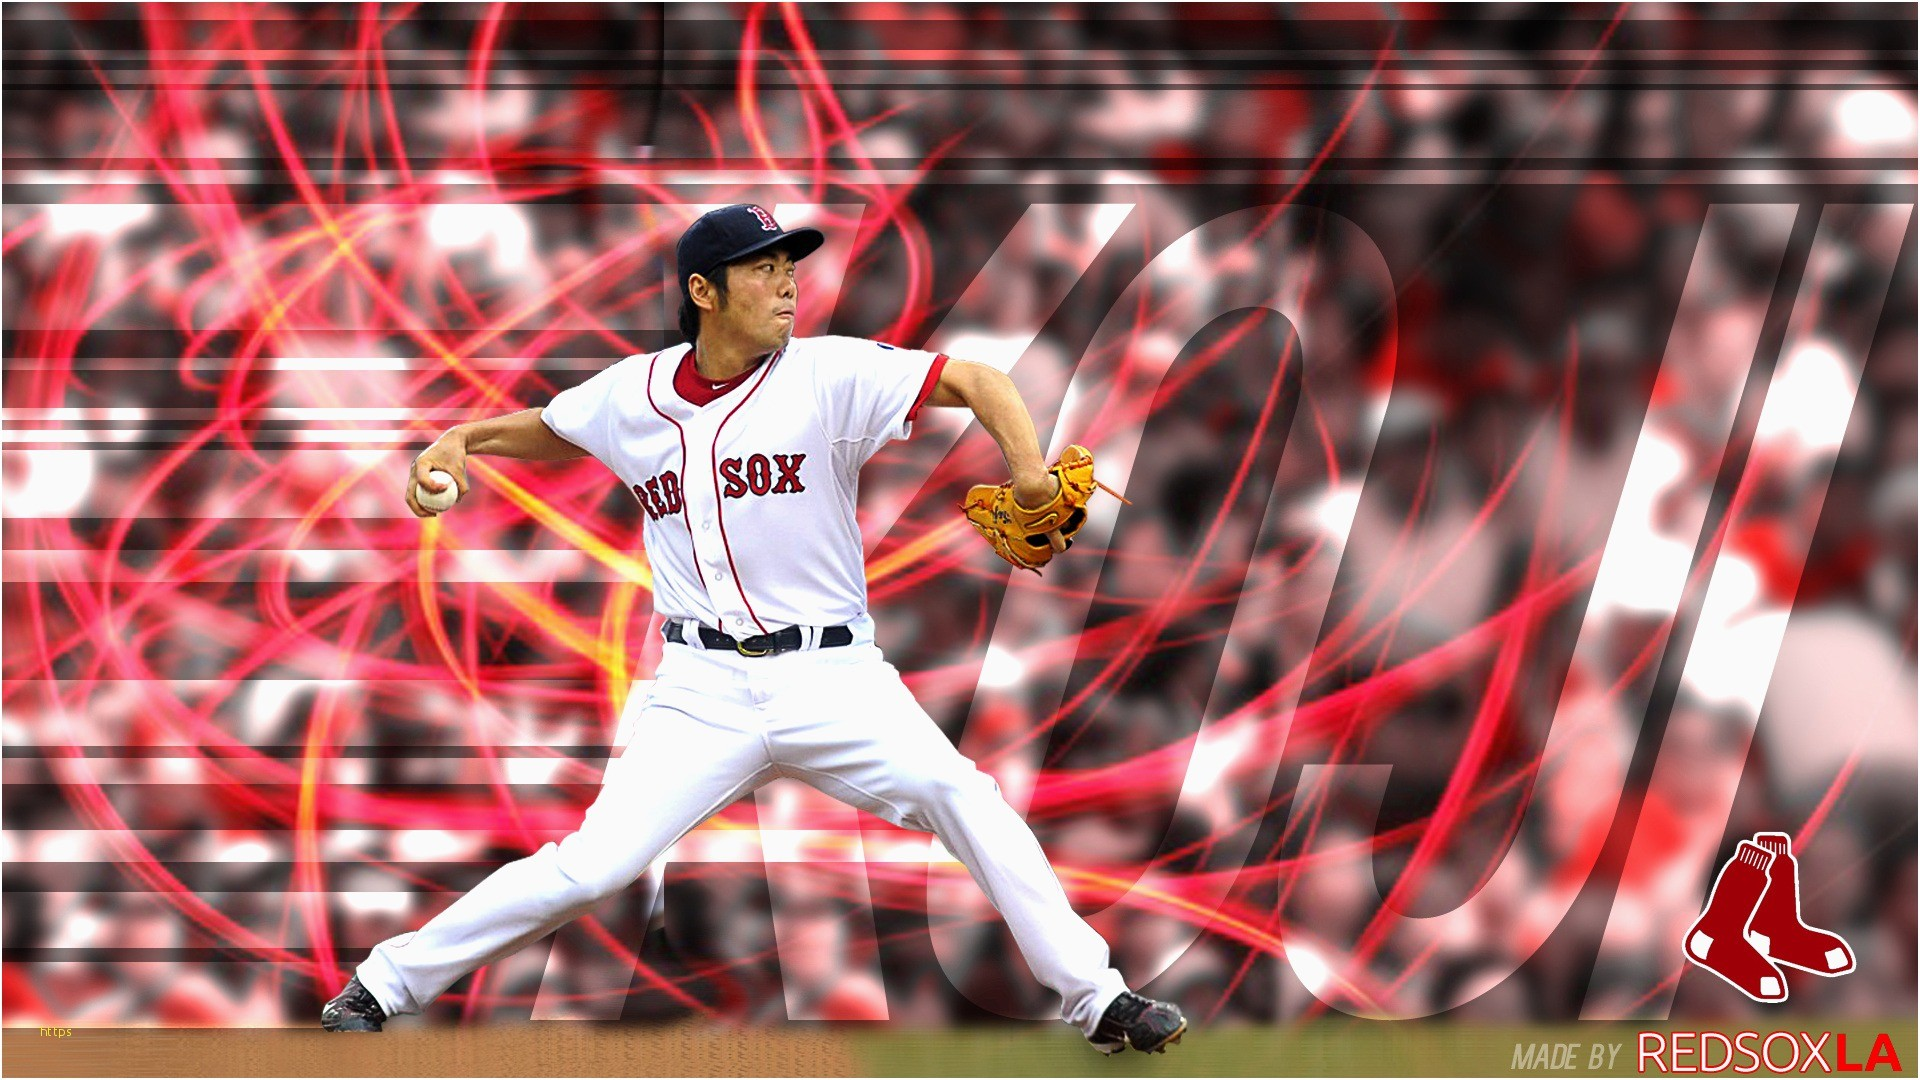 1920x1080 Red sox Wallpaper Best Of Boston Red sox Hd Wallpapers